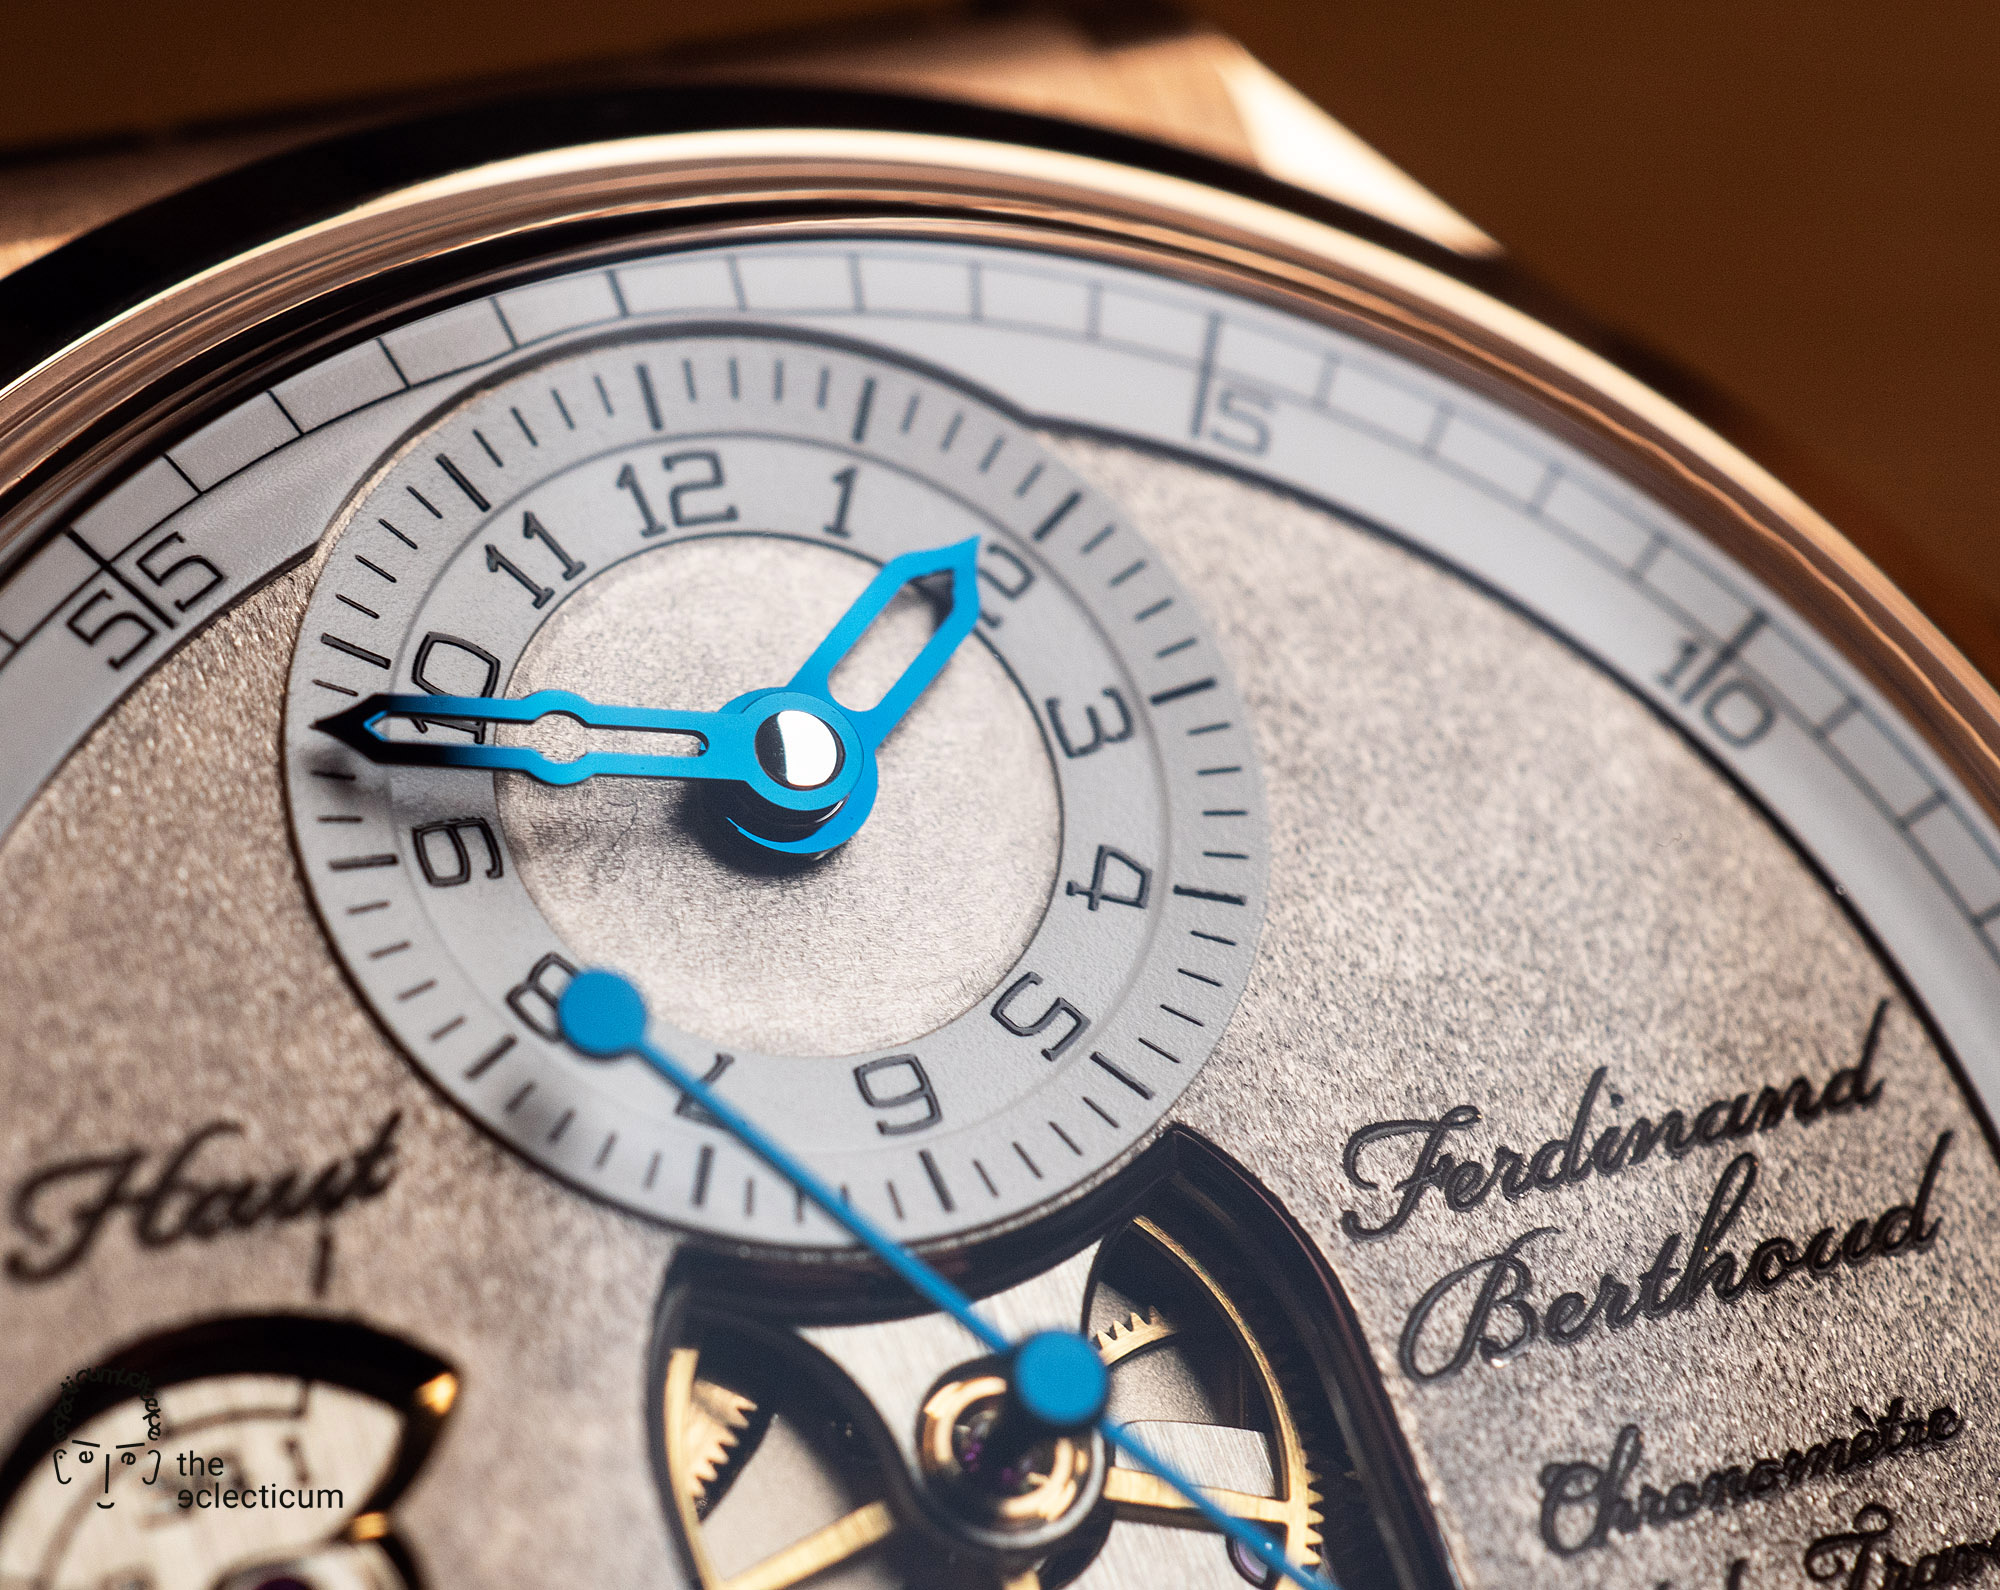 Ferdinand Berthoud Chronometry FB 1 œuvre oeuvre d'or chronometer dial heatblued steel hands